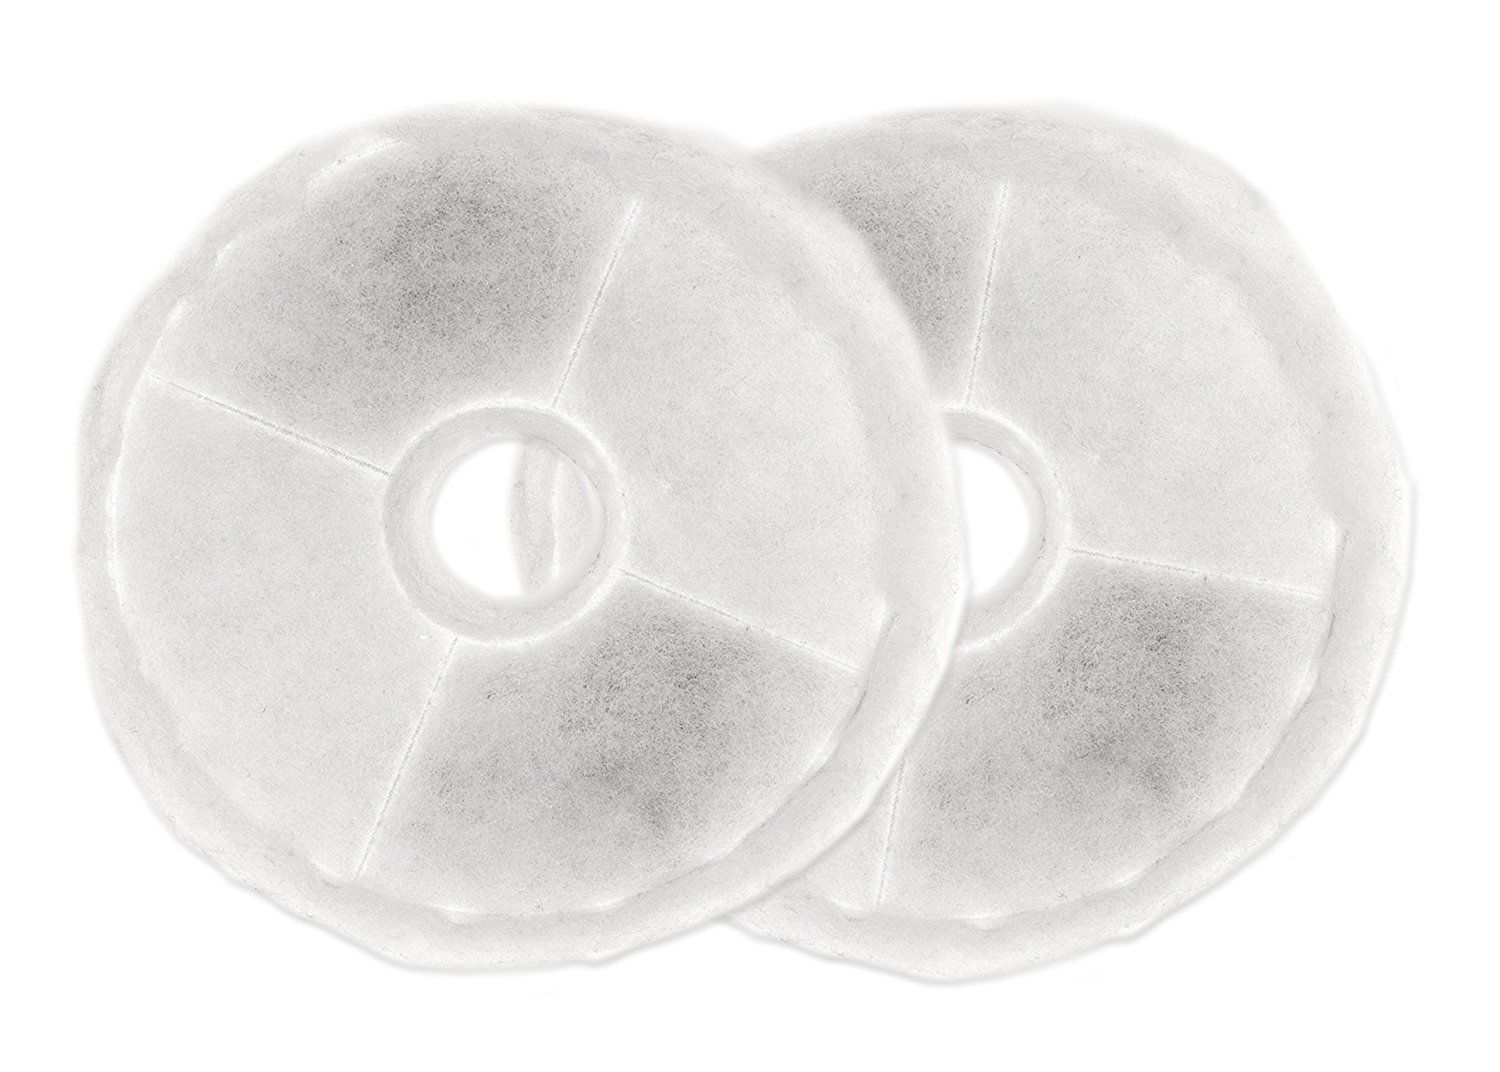 Catit flower fountain replacement filters 2 pack find